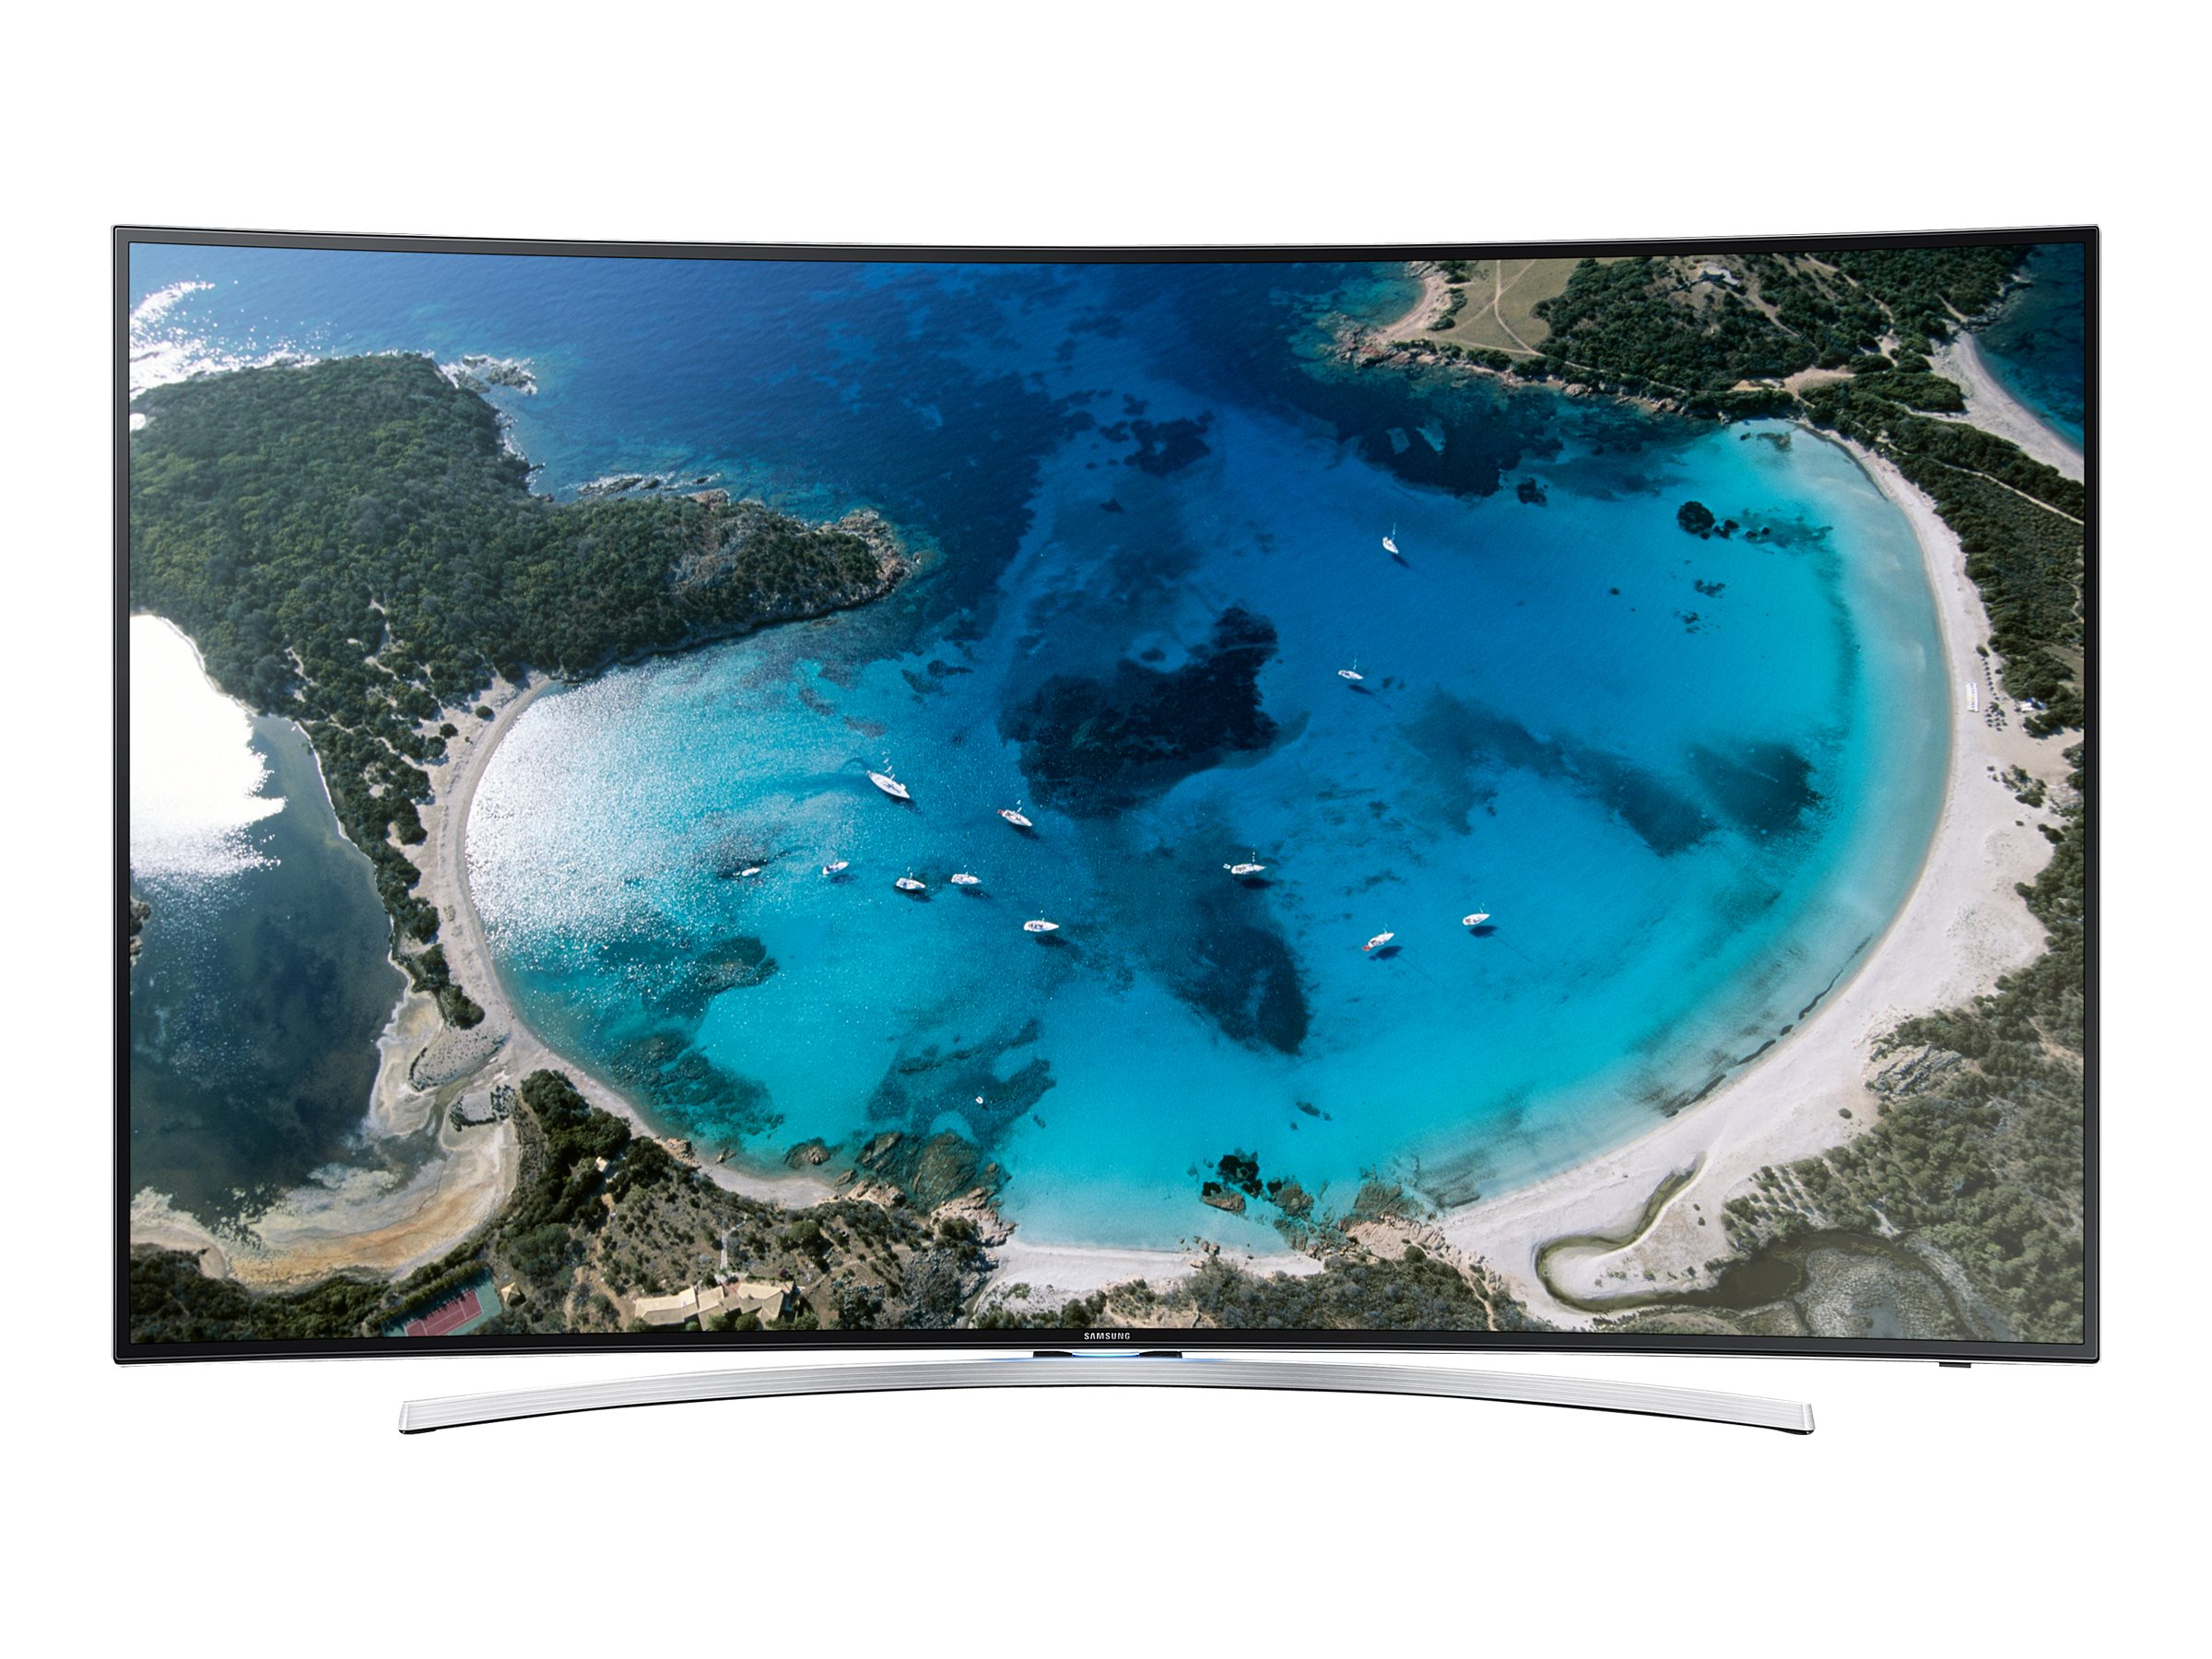 Samsung 55 890 Series Full HD LED-LCD Hospitality TV, Black, HG55NC890VFXZA